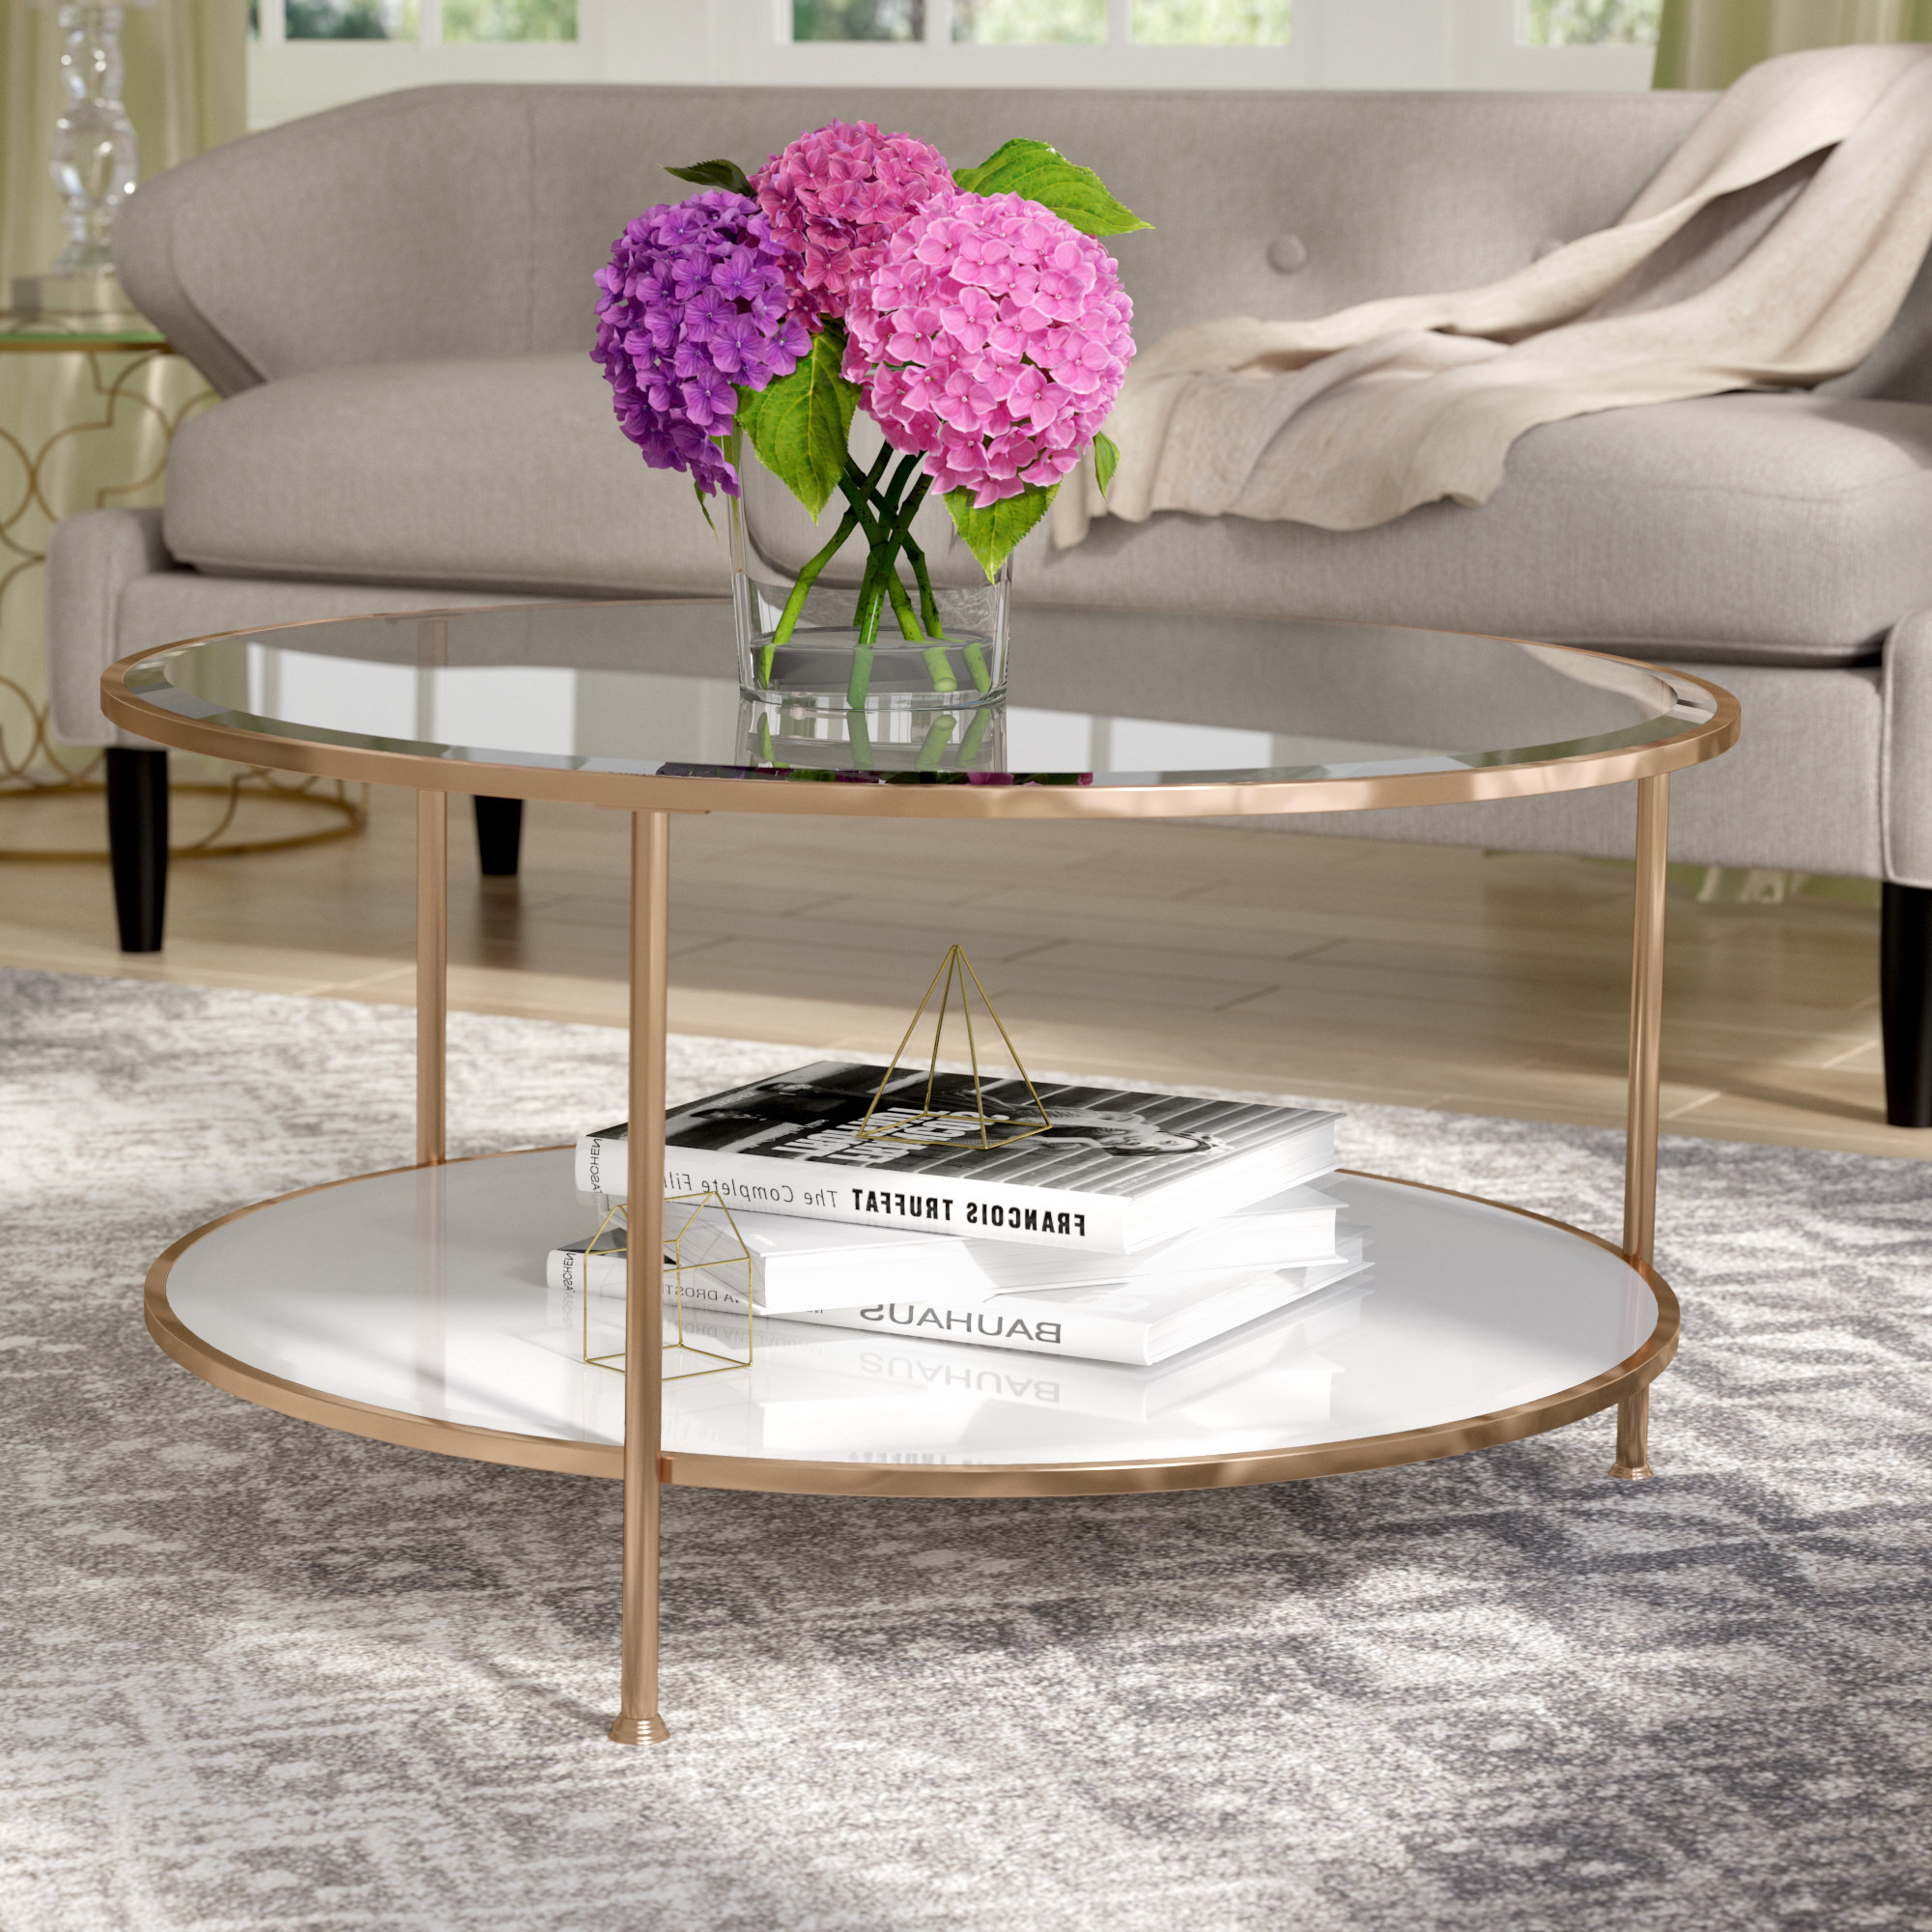 Wayfair Regarding Most Recent Round White Wash Brass Painted Coffee Tables (View 11 of 20)